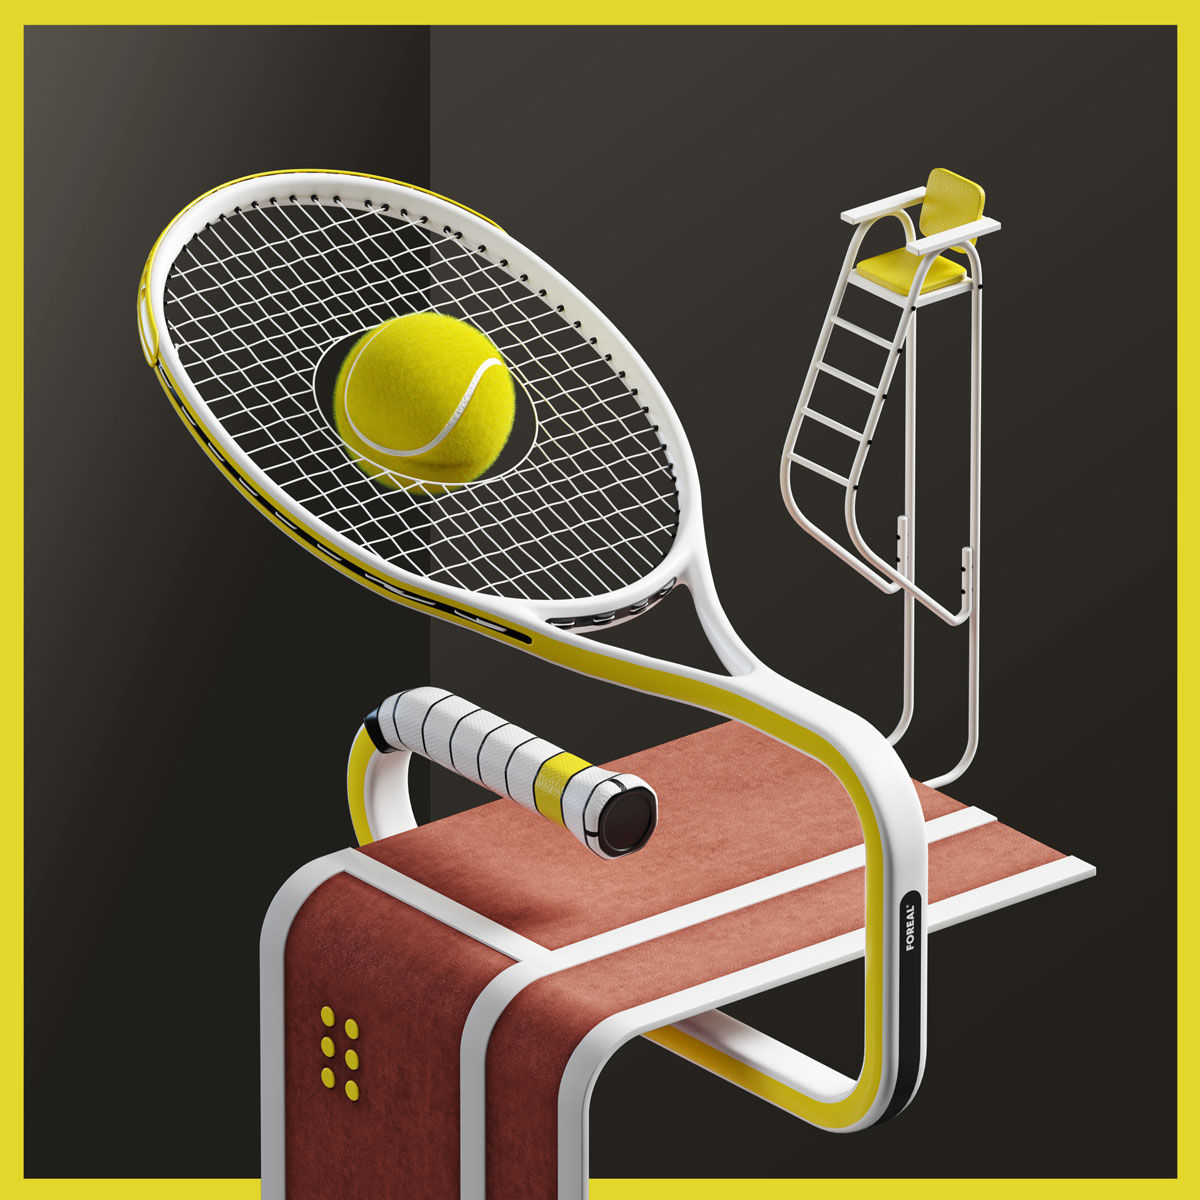 foreal_sportive_spaces_tennis__